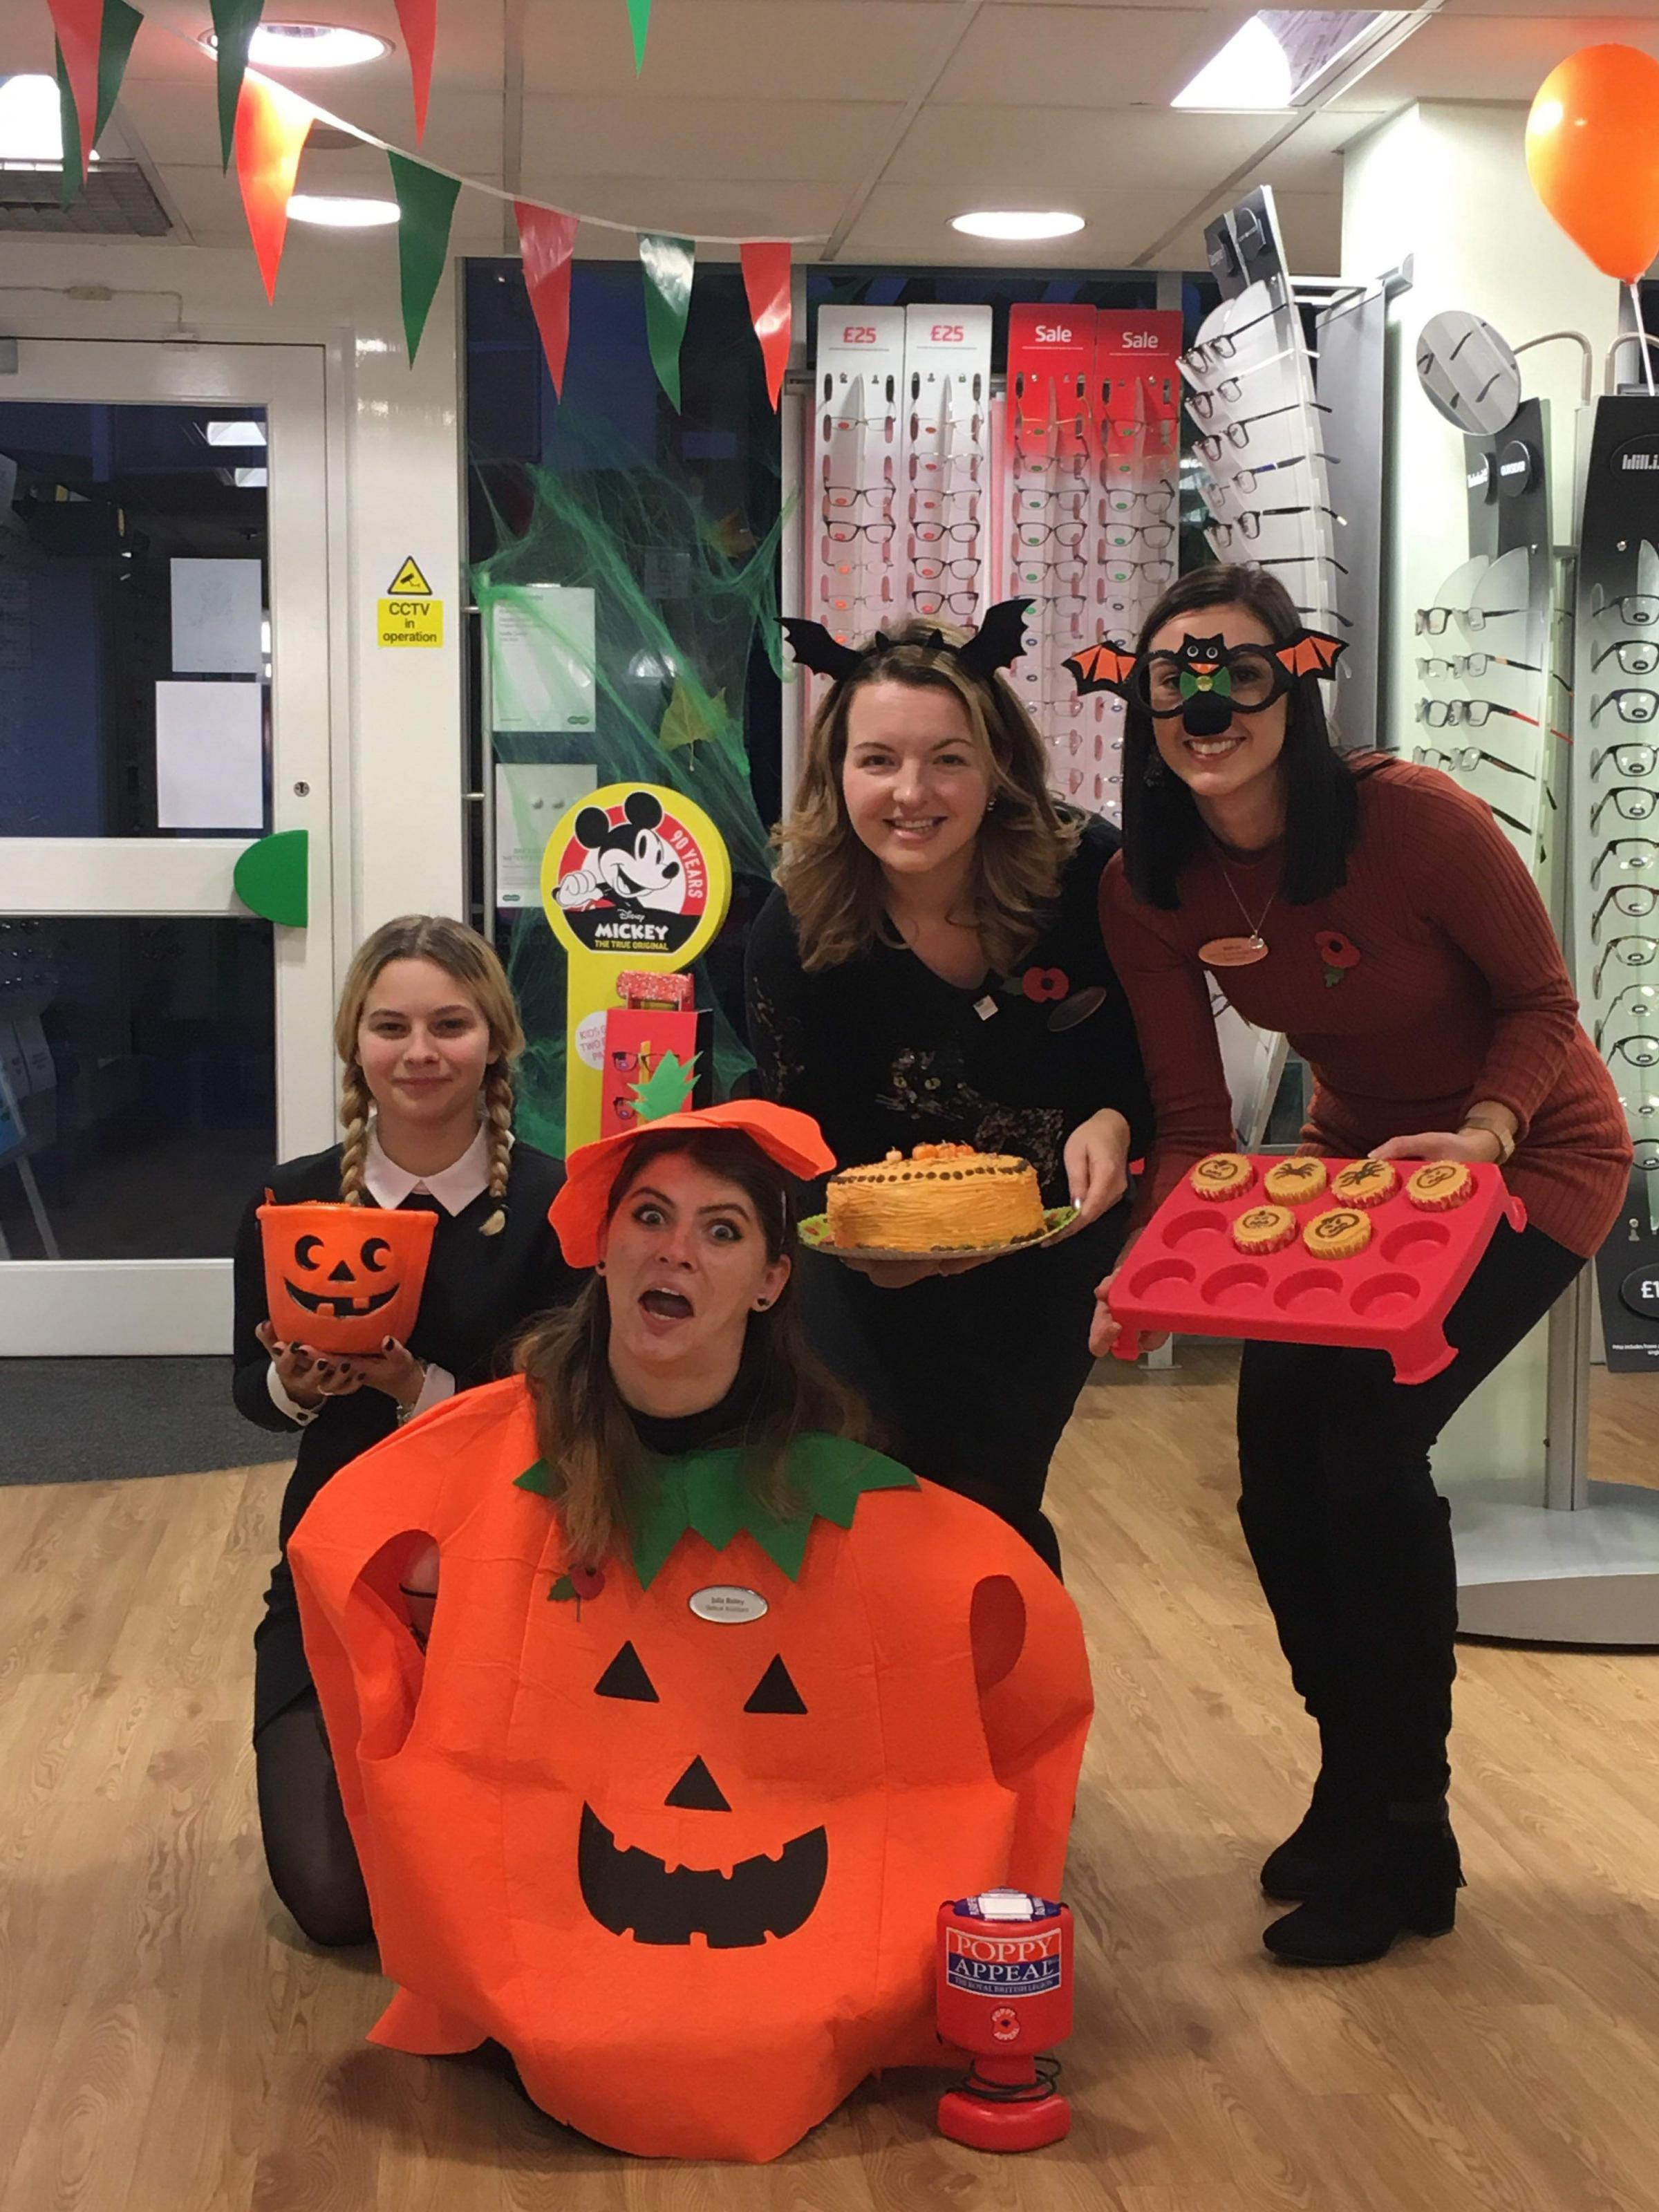 Caption: From left to right: Lauren Adams, Julia Bailey (dressed as the pumpkin), Rebecca Lewis and Bethan Edwards.